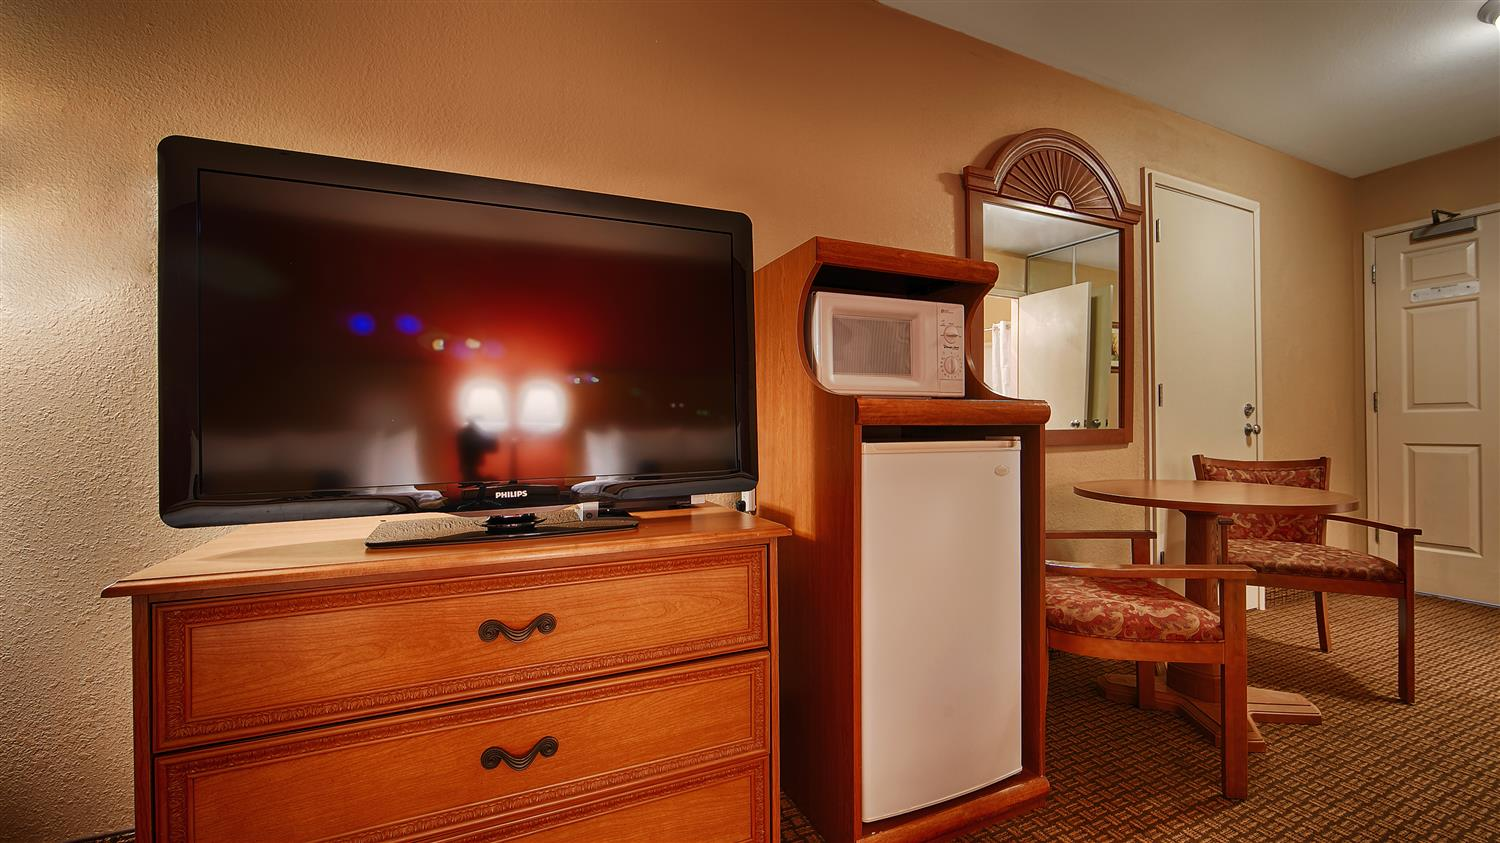 All Of Our Rooms Come Equipped With A Microwave And Refrigerator For Your Snacking Needs